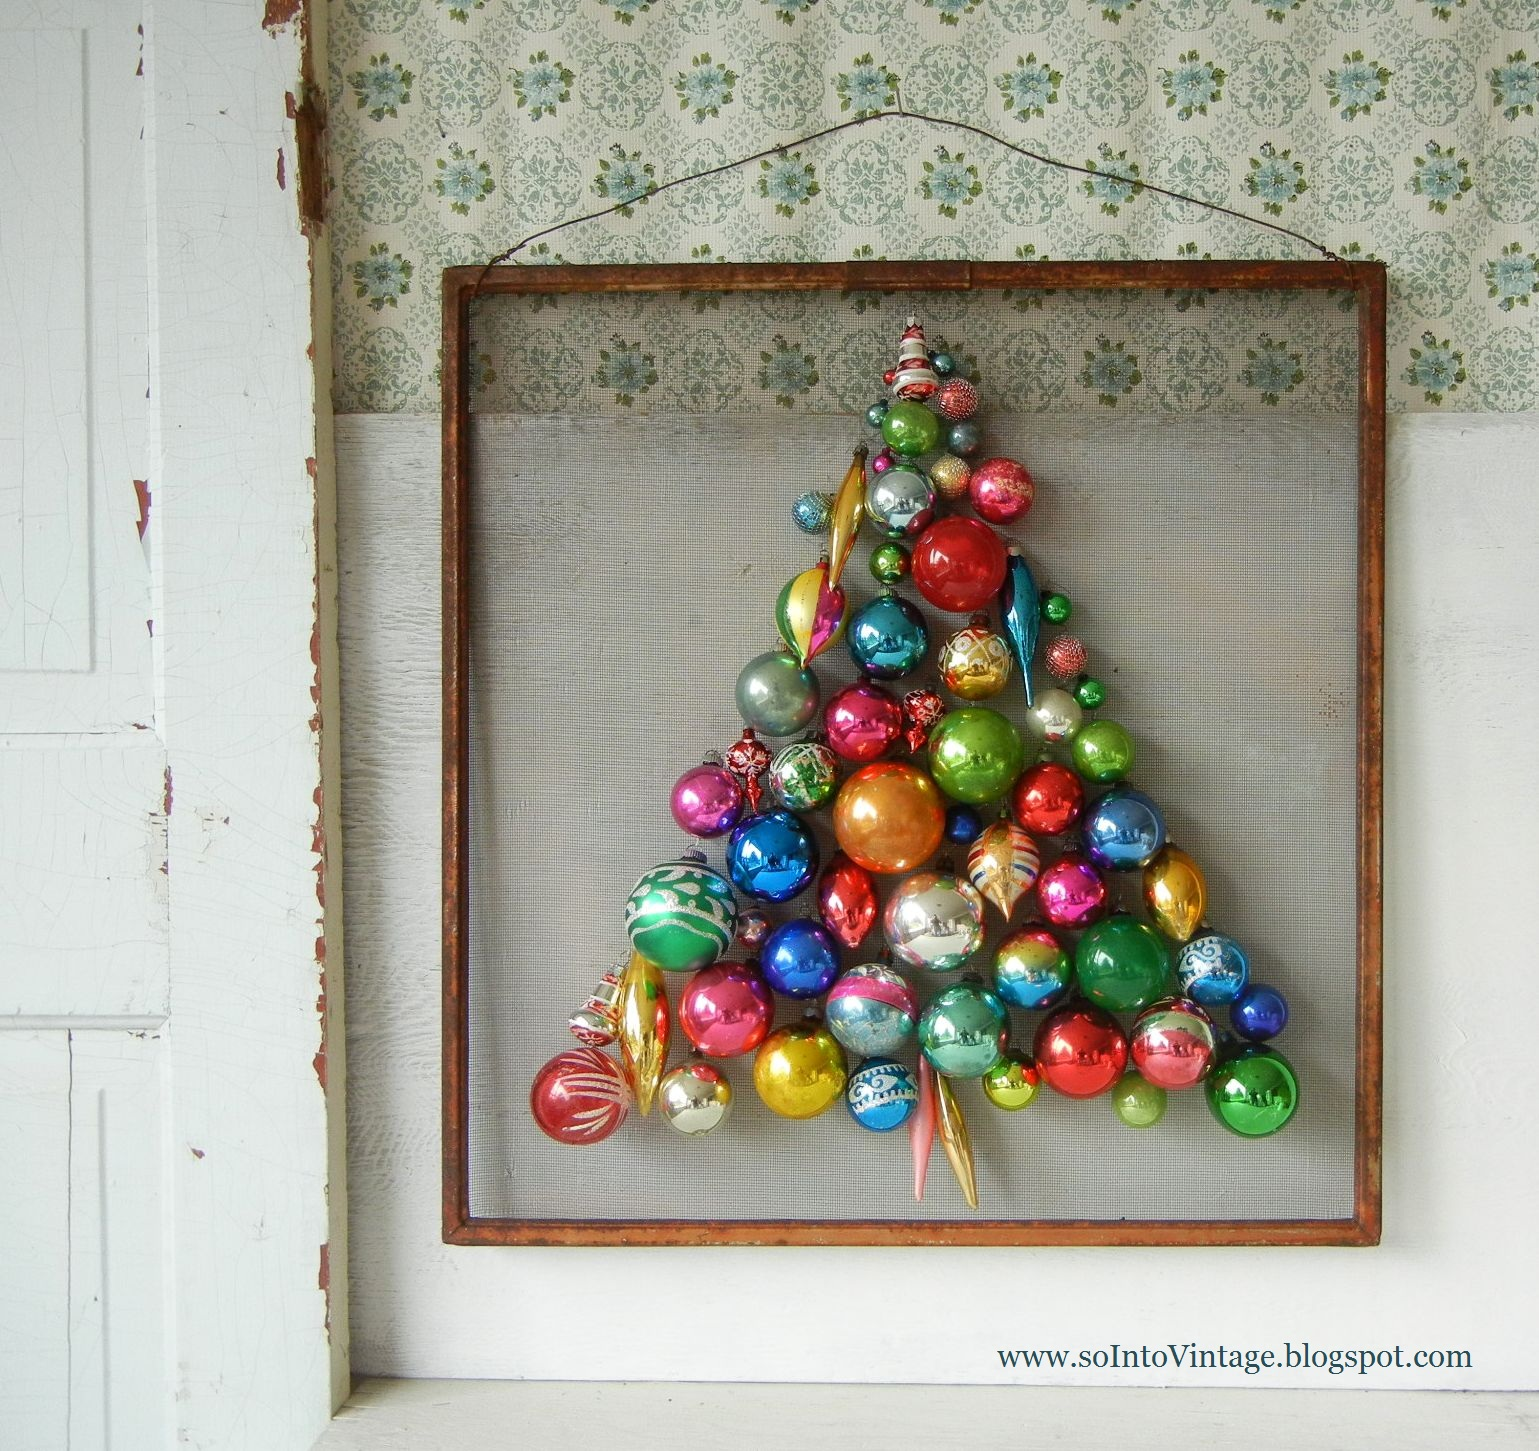 20 Fun And Stylish Alternative Christmas Trees: christmas tree ornaments ideas